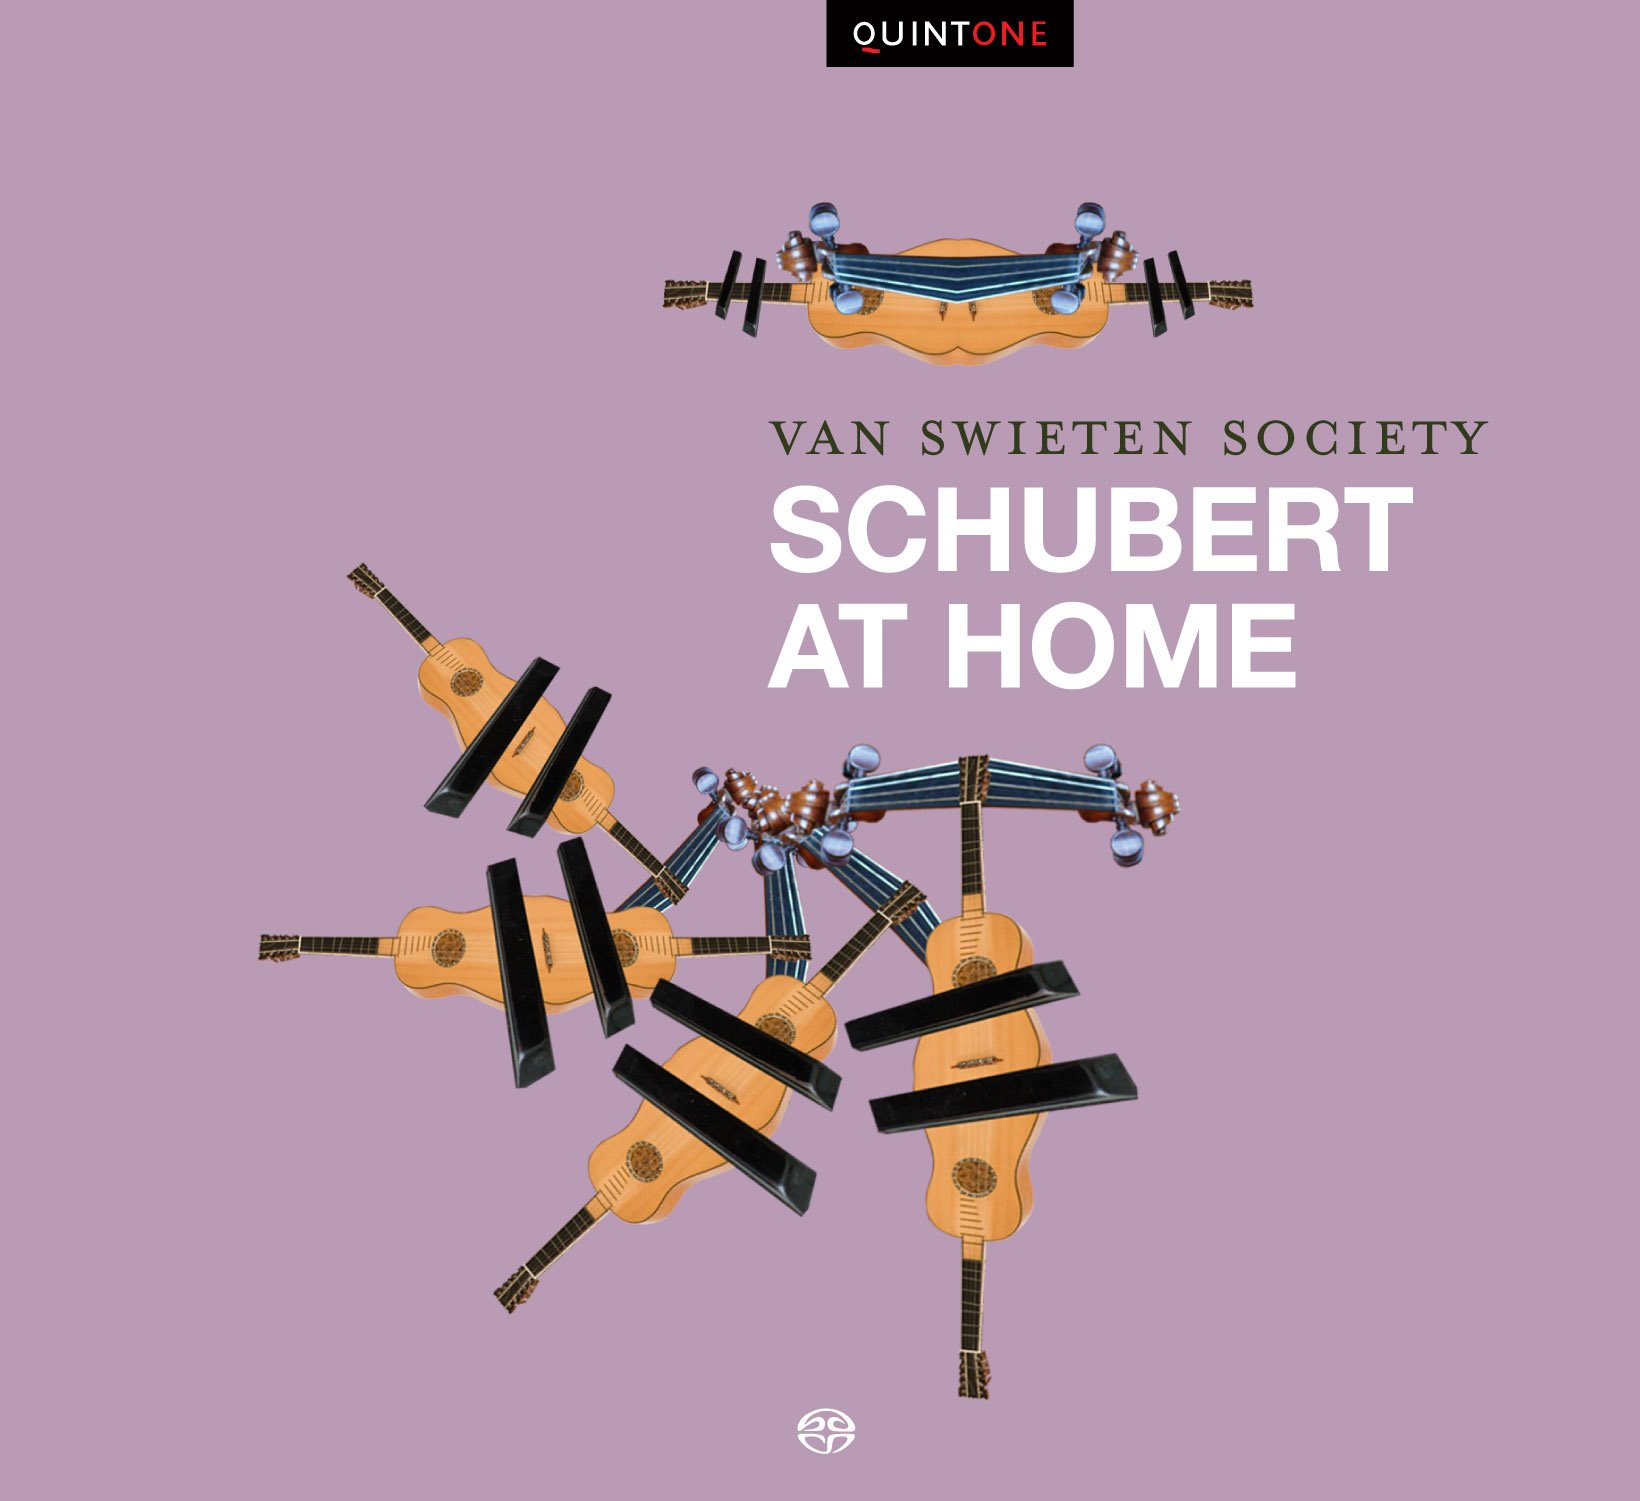 Van Swieten Society: Schubert at Home